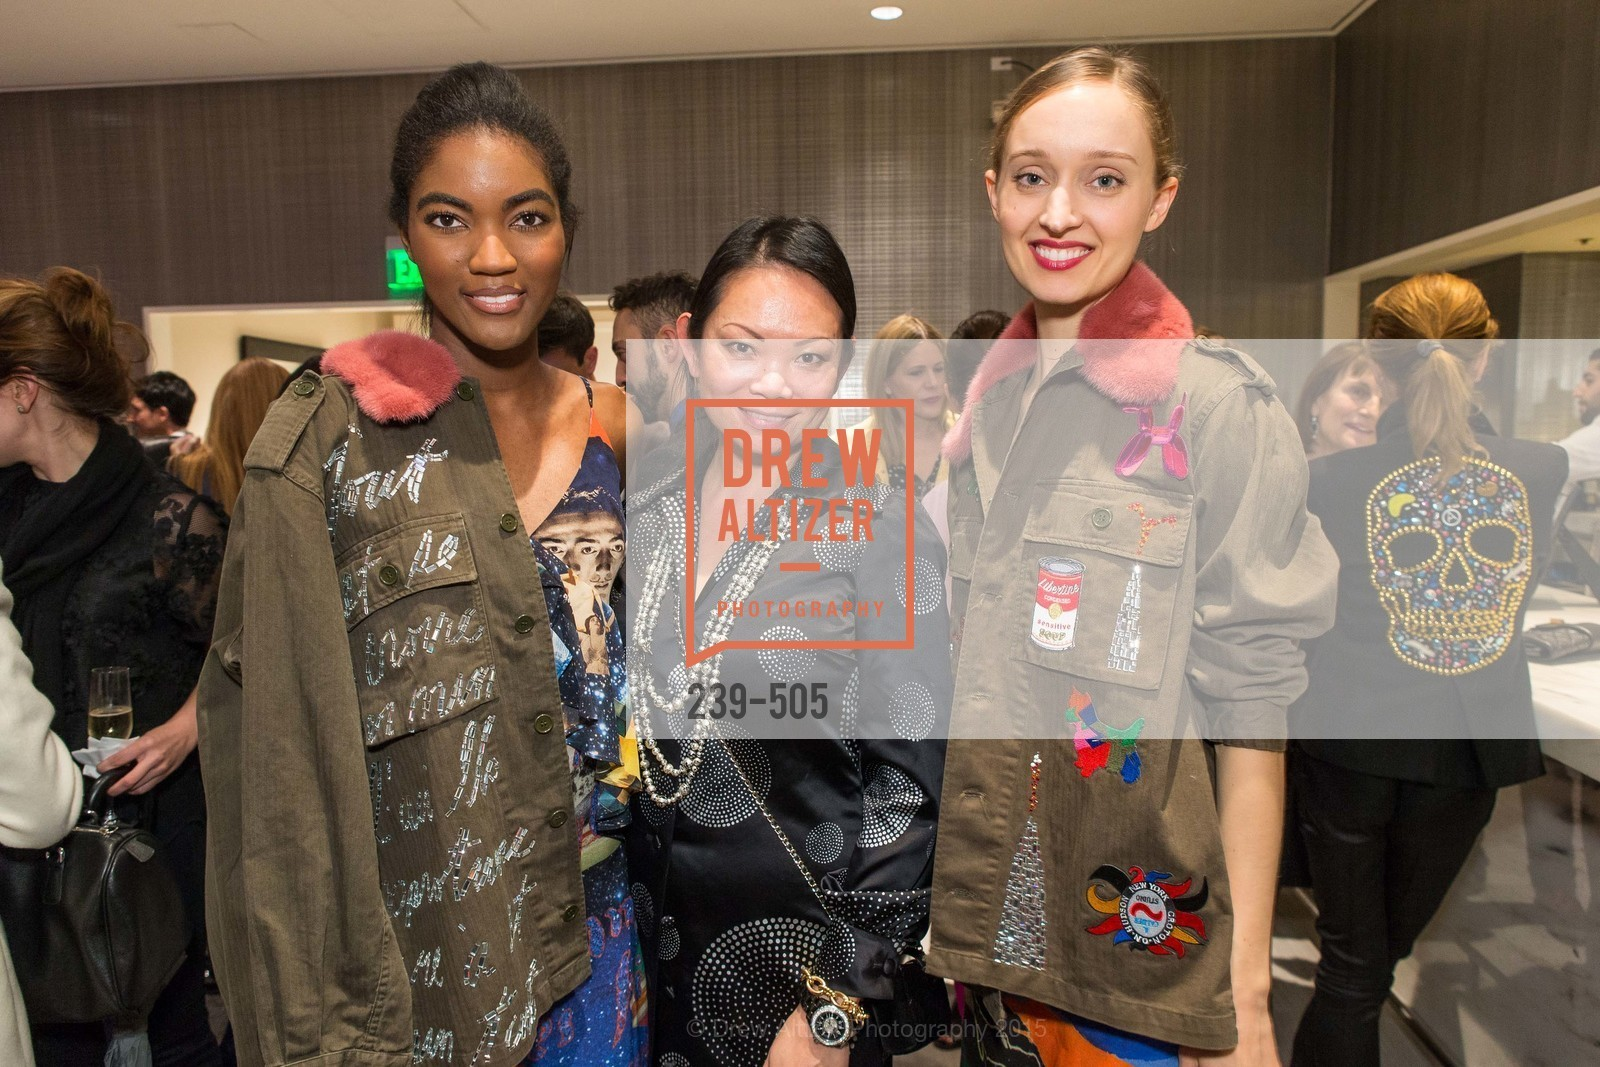 Sydney Reed, Genie Huh, Katrina Sperry, Libertine Cocktail Party at Neiman Marcus, Neiman Marcus, November 10th, 2015,Drew Altizer, Drew Altizer Photography, full-service agency, private events, San Francisco photographer, photographer california